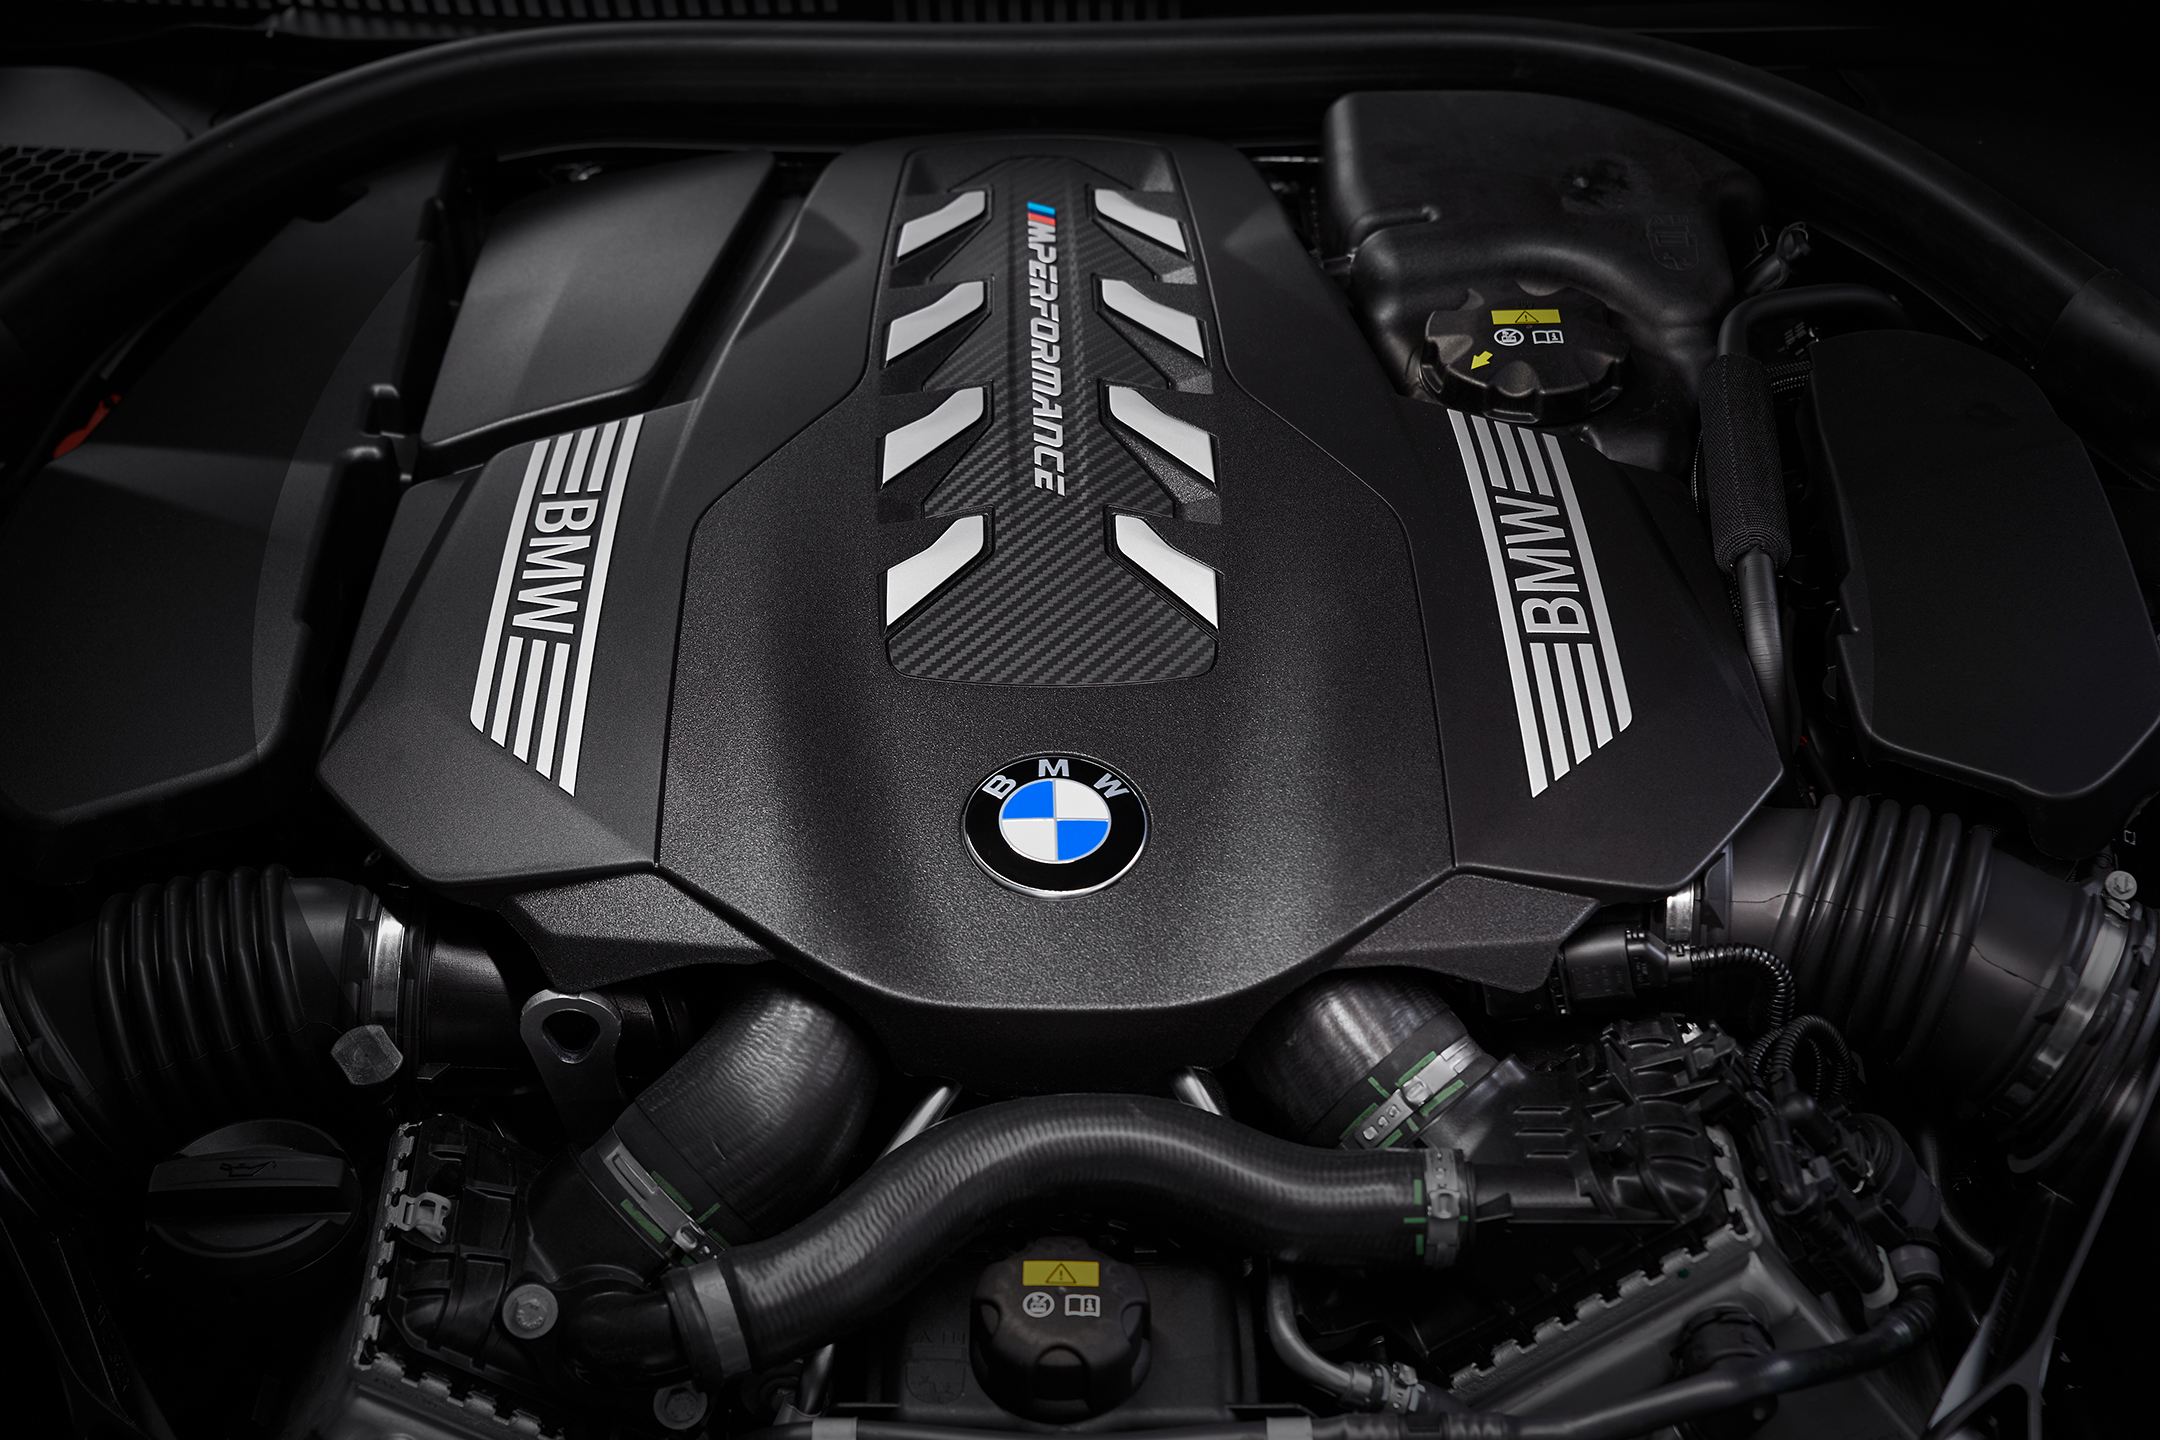 BMW 8 Series Coupe - 2018 - engine / moteur - 4.4L V8 Twin Turbo